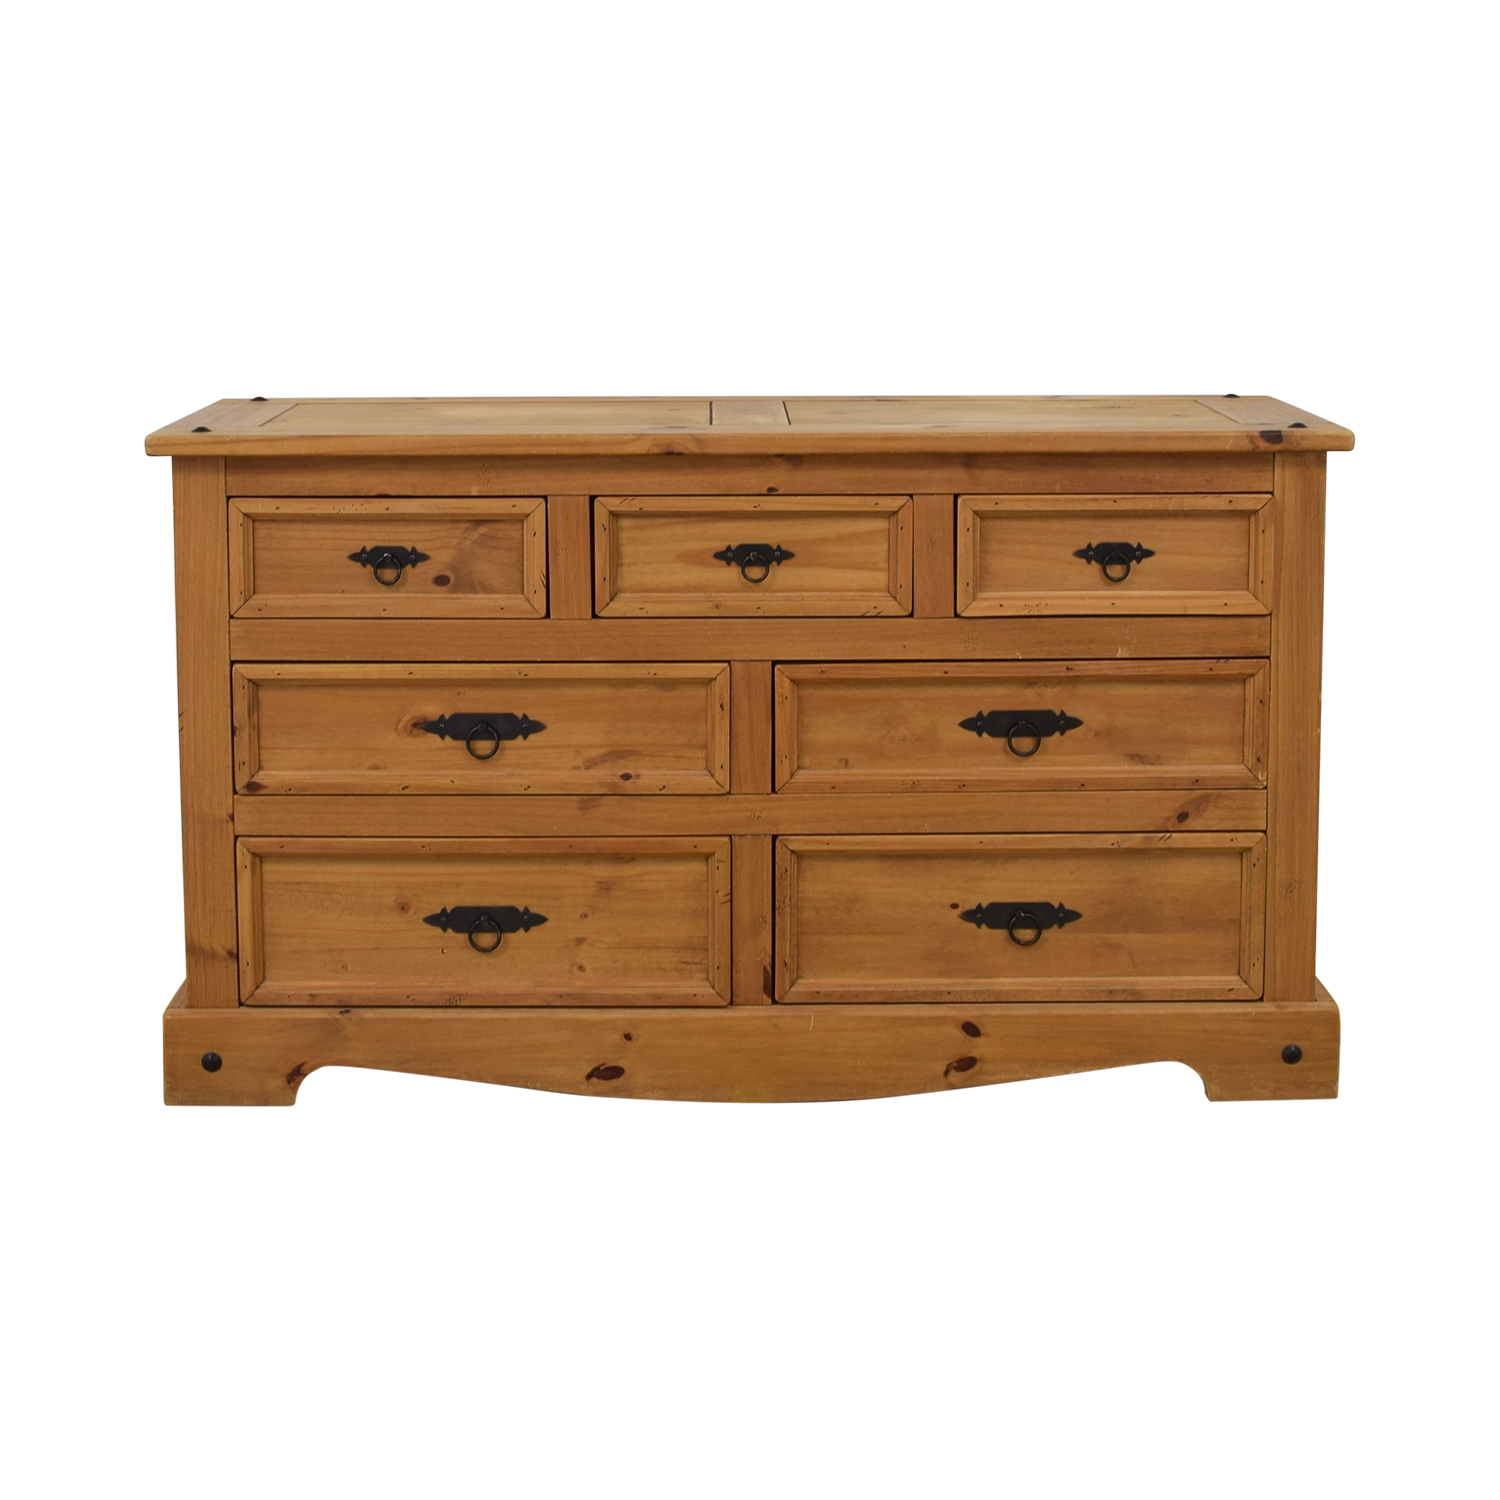 Pottery Barn Pottery Barn Seven Drawer Wide Dresser used